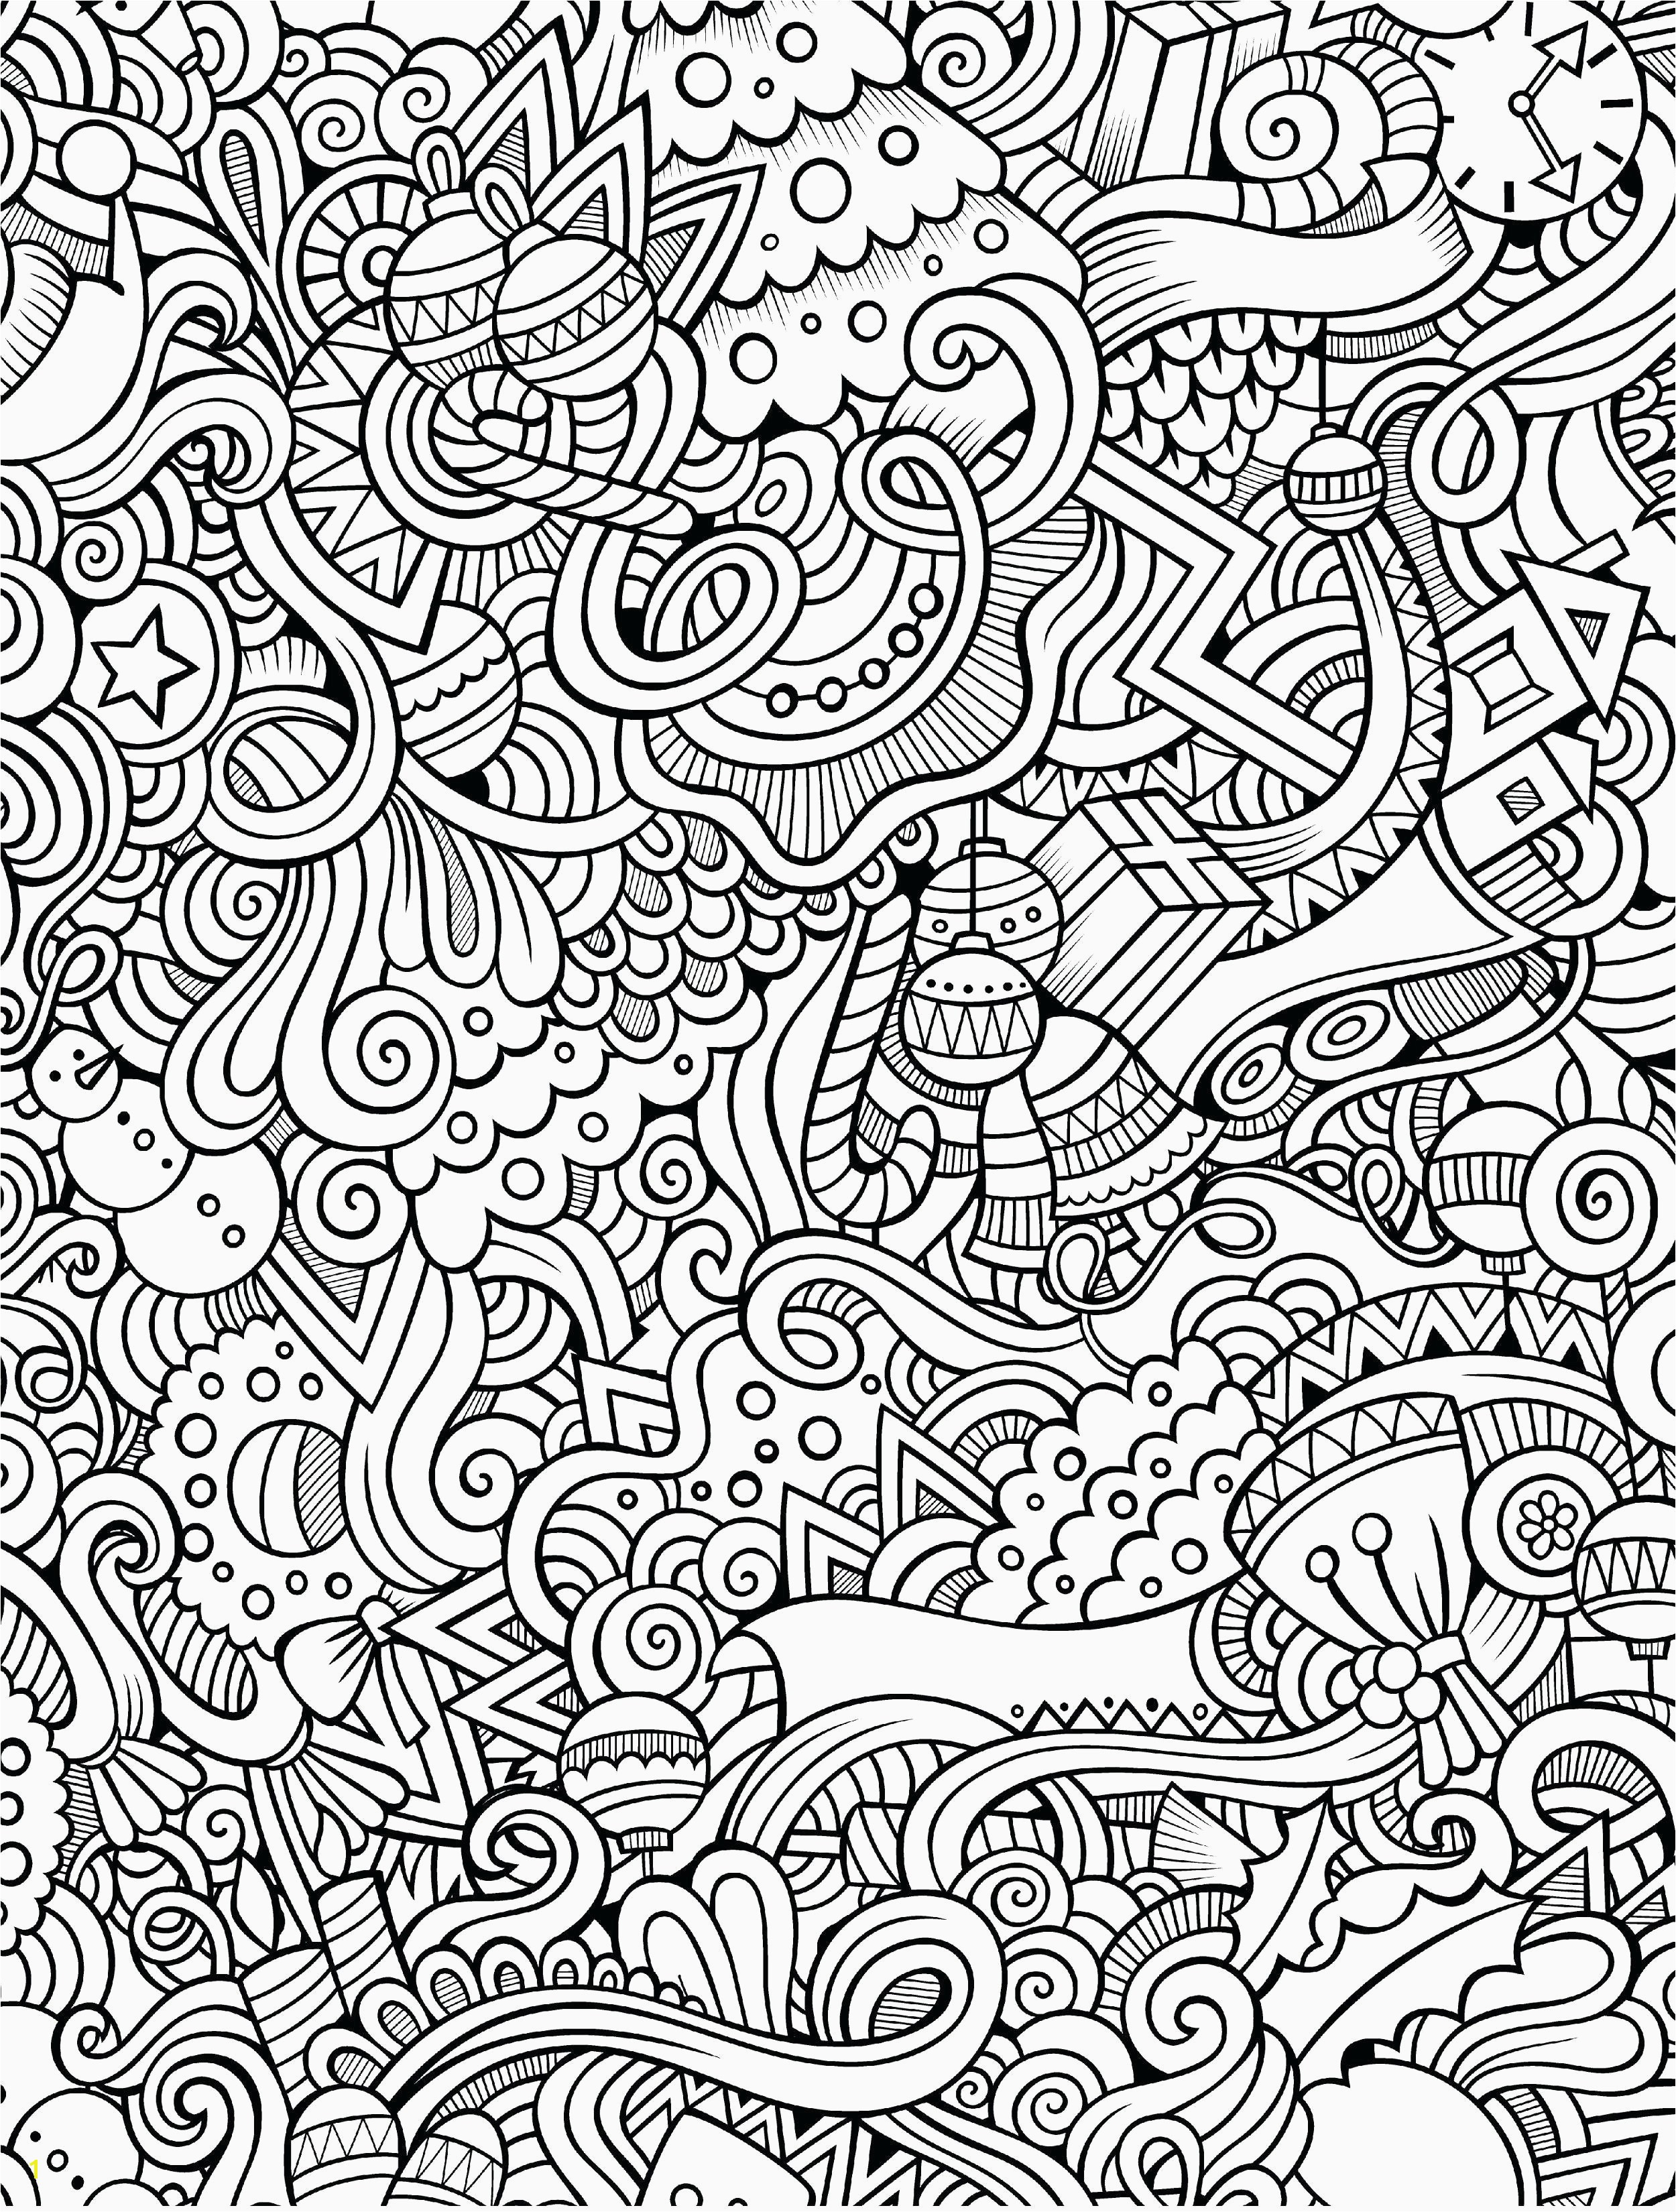 Printable Coloring Pages Hard Luxury Hard Coloring Pages Printable Free